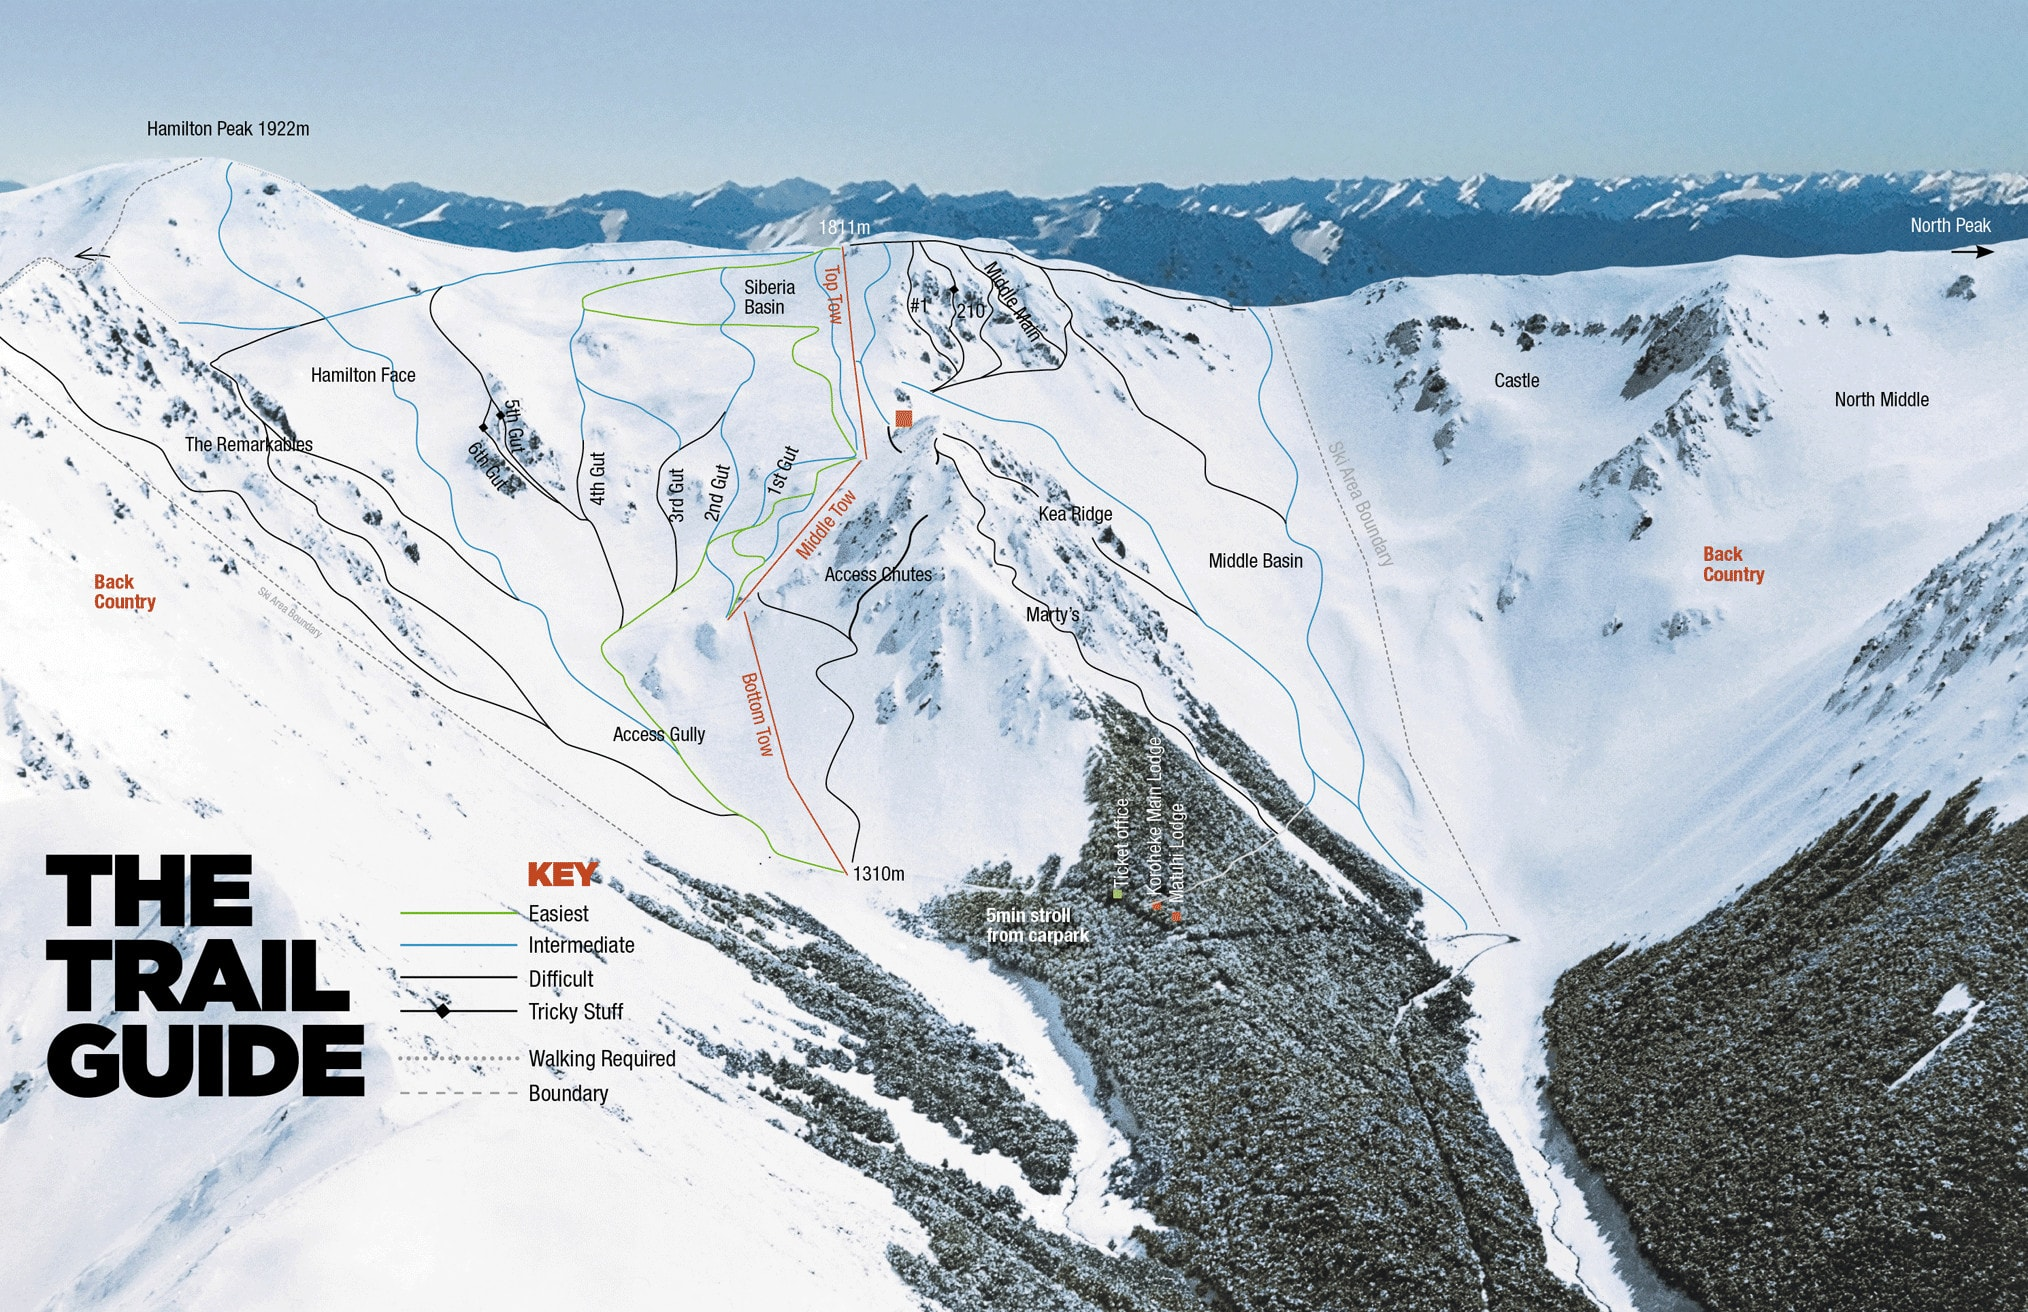 Craigieburn Piste / Trail Map